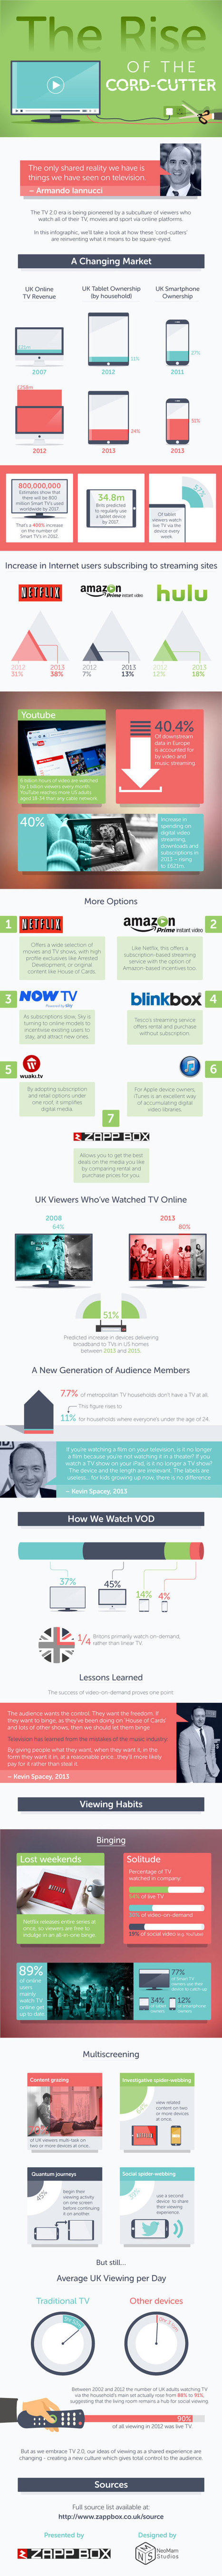 8% of metro homes have no TV. Rise of The Cord-Cutter [Infographic] | 3D animation transmedia | Scoop.it